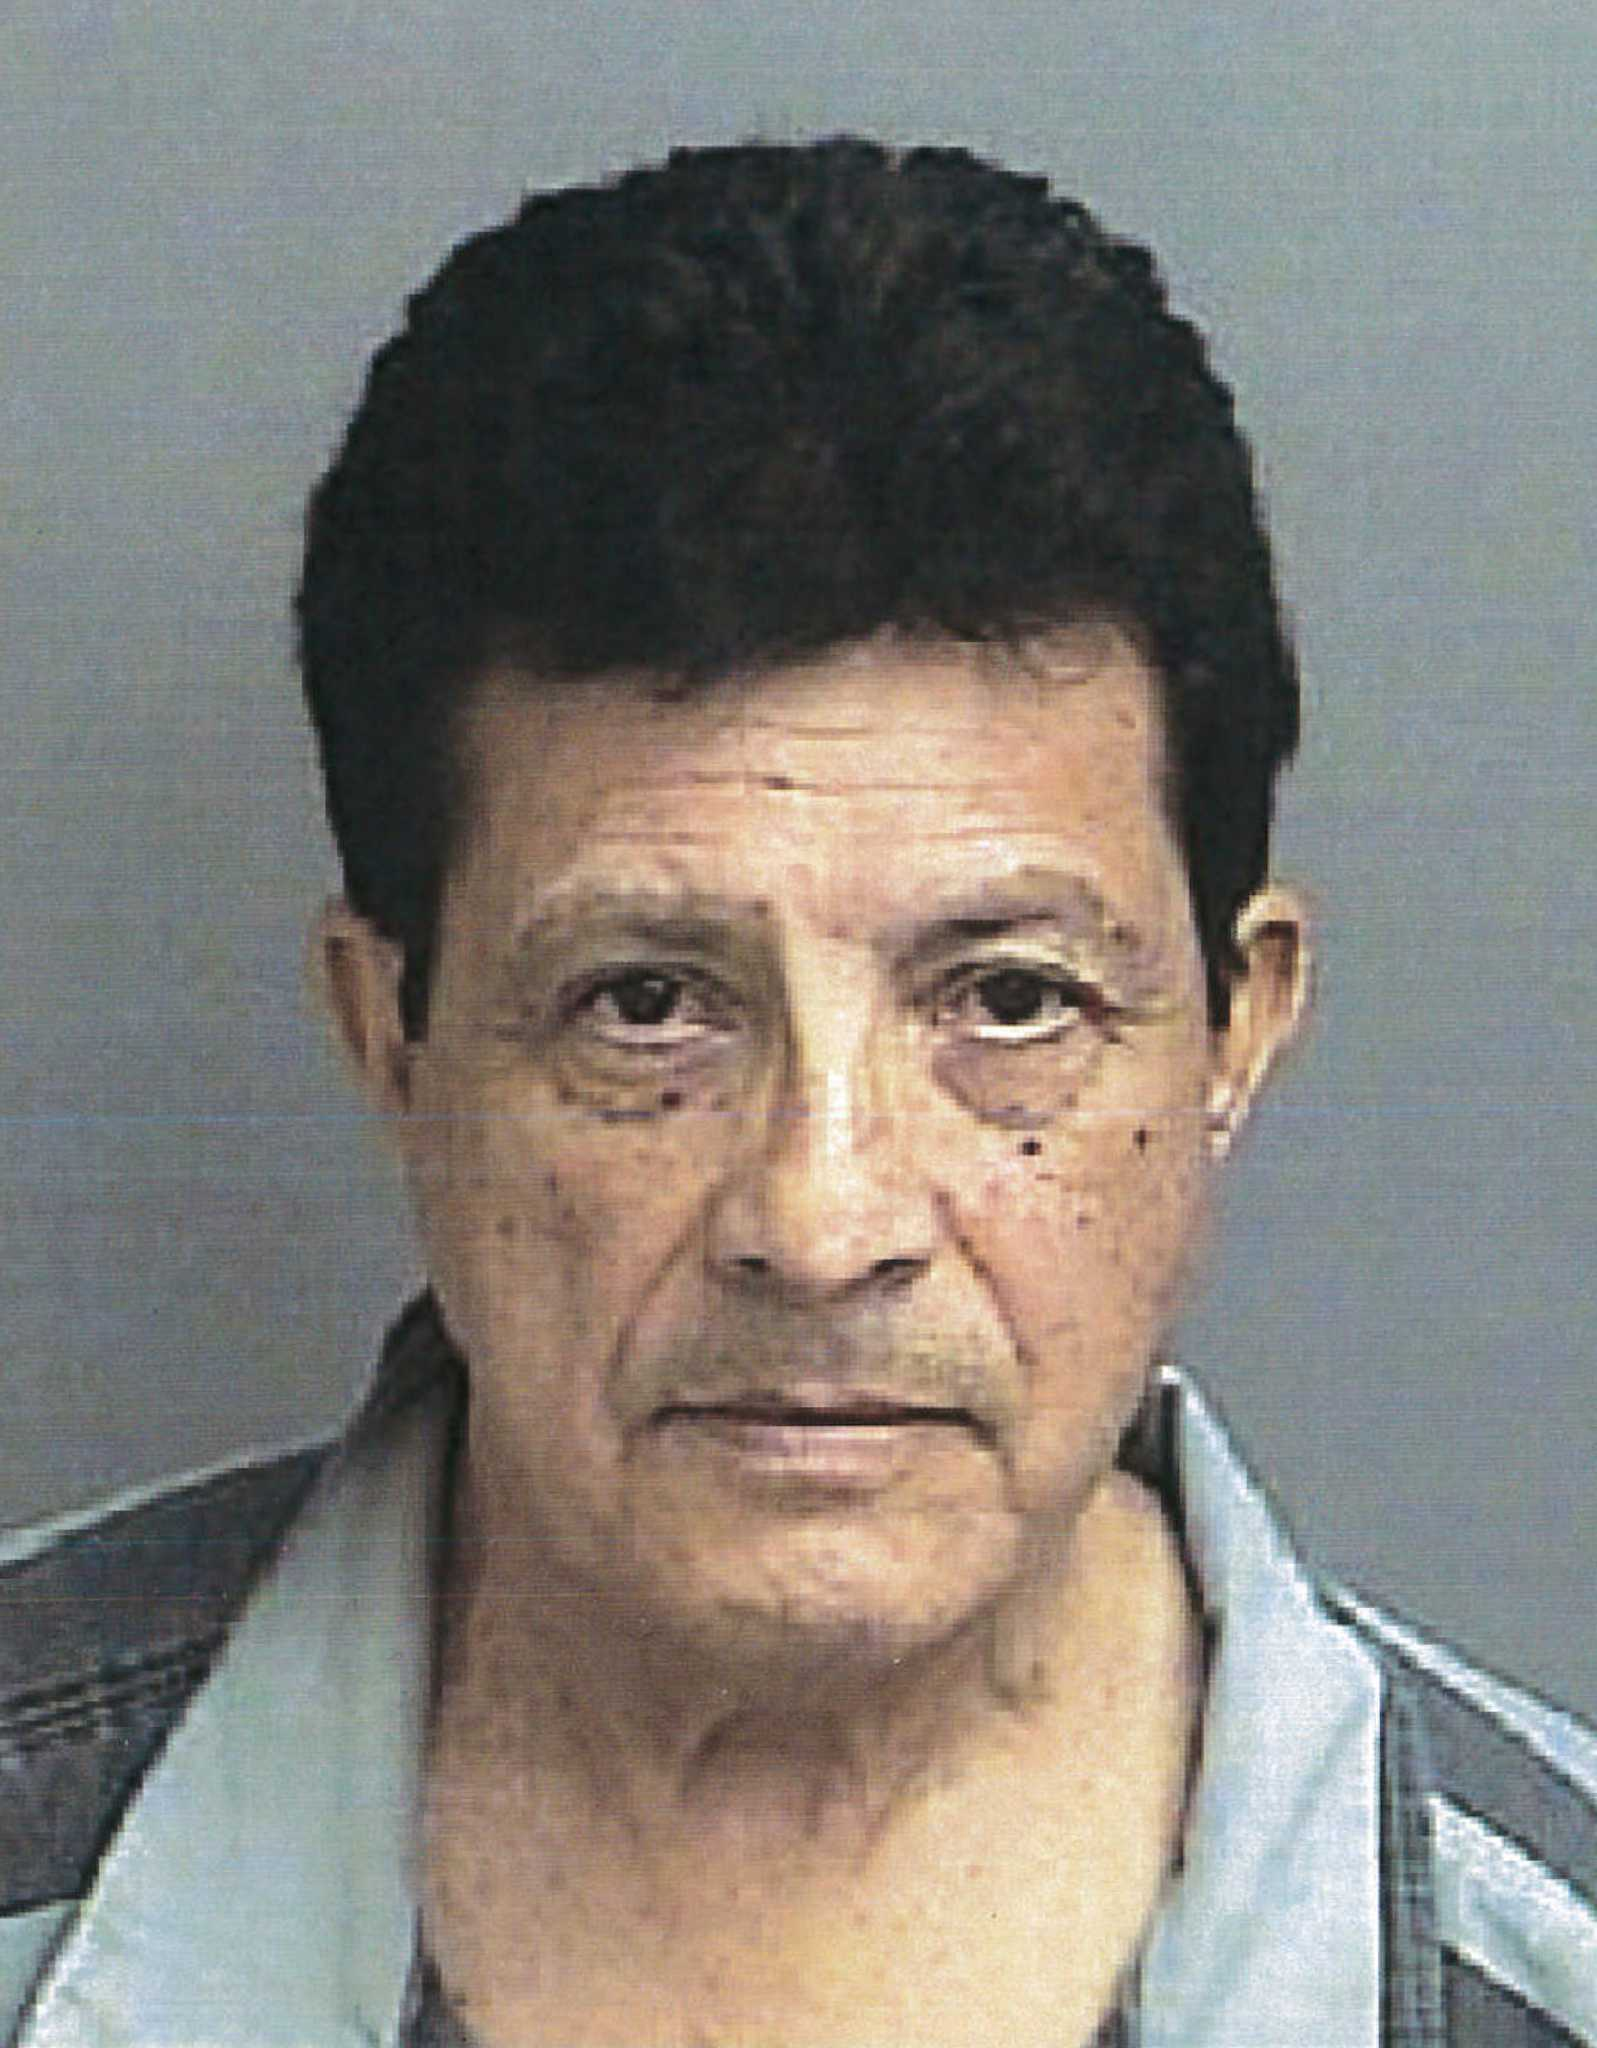 Woodlands pastor charged with sexual assault over 9 years - San ...